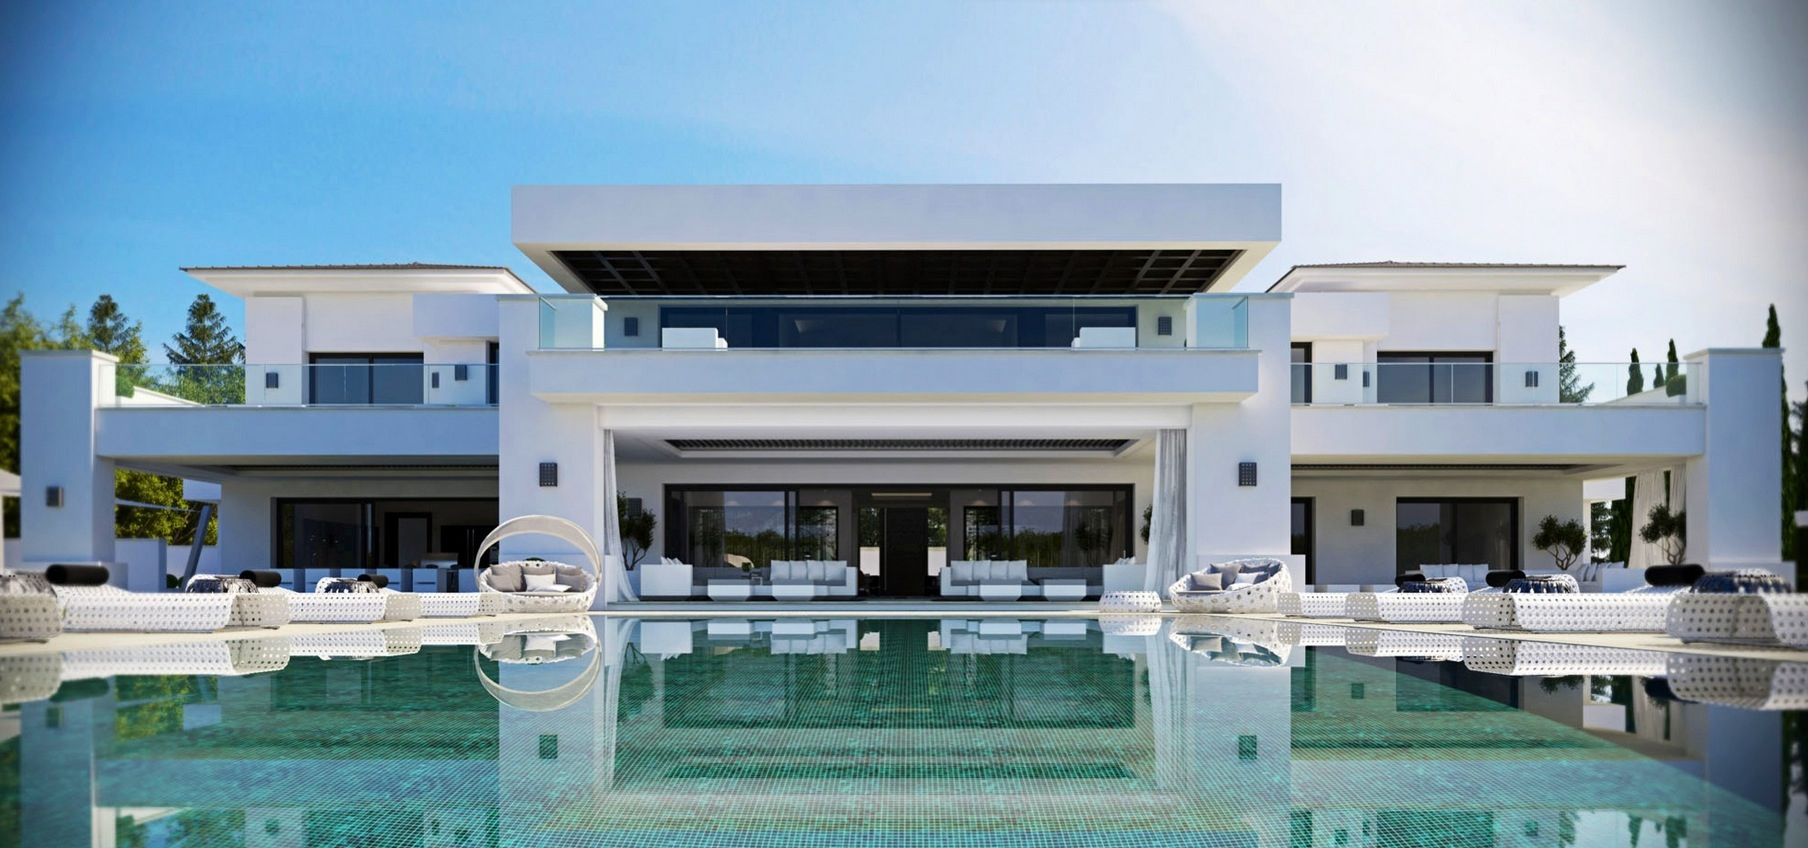 Luxurious 9 Bedroom Spanish Home With Indoor & Outdoor Pools